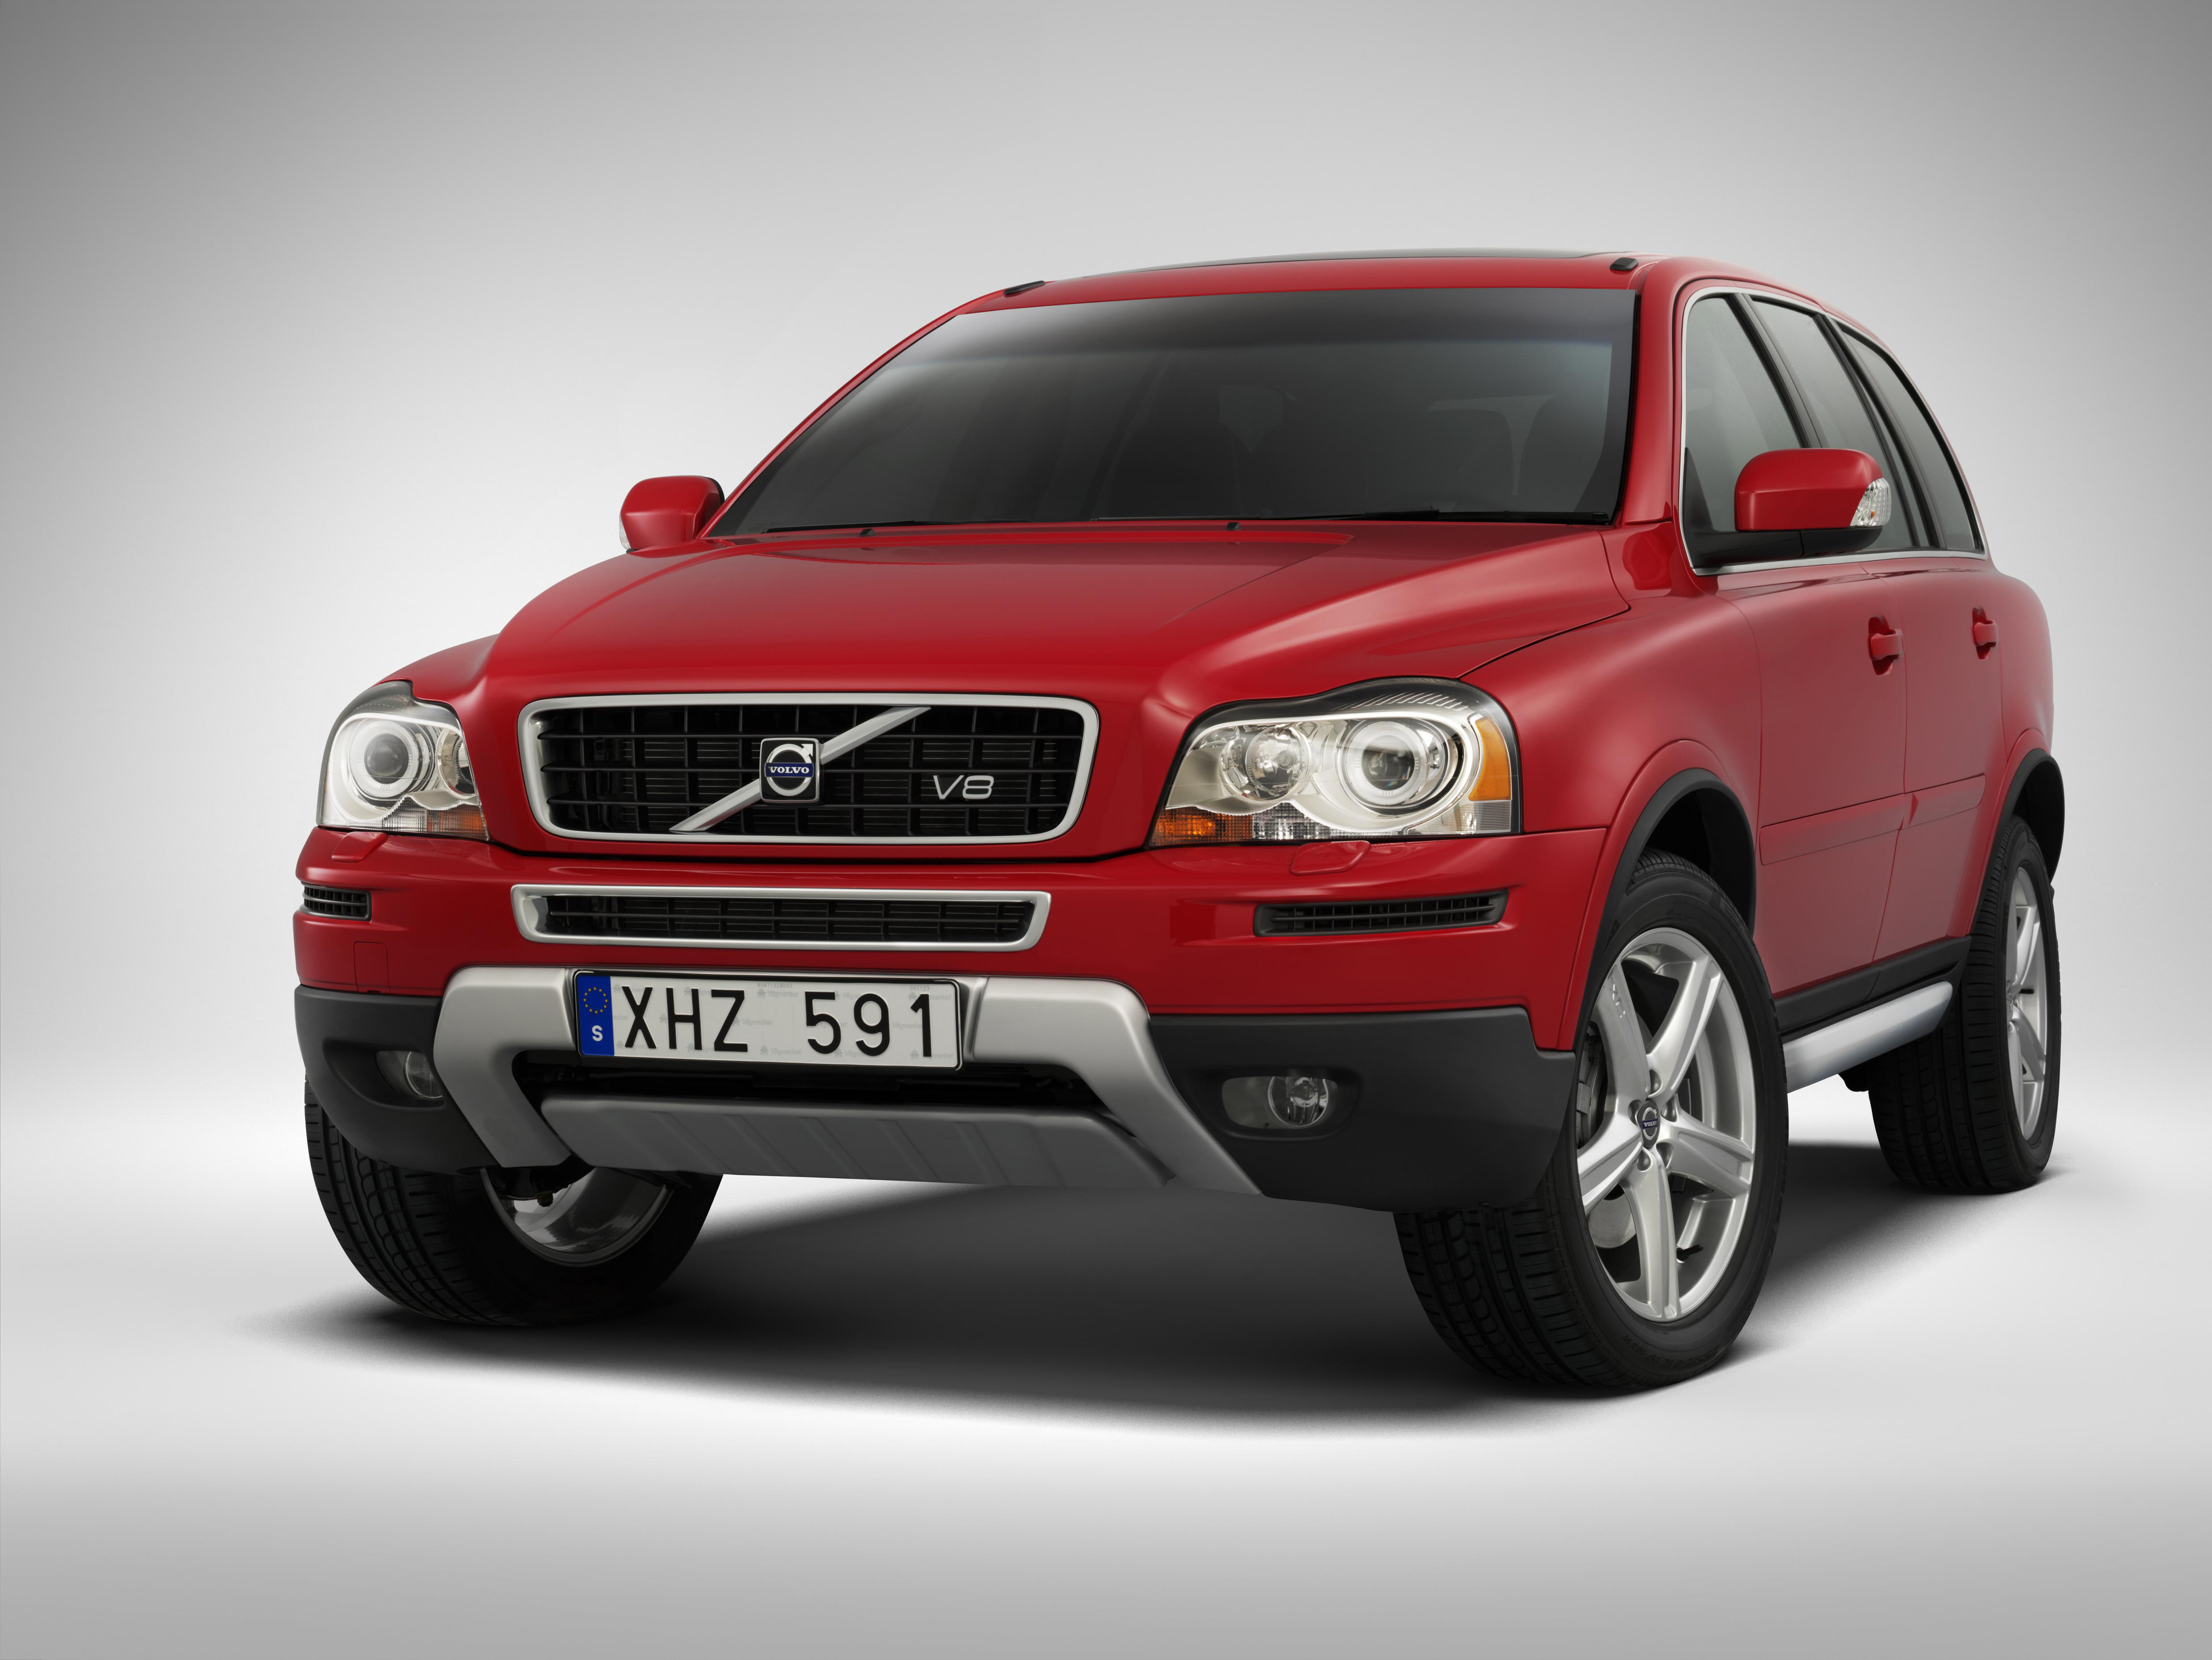 2007 volvo xc90 v8 sport review gallery top speed. Black Bedroom Furniture Sets. Home Design Ideas